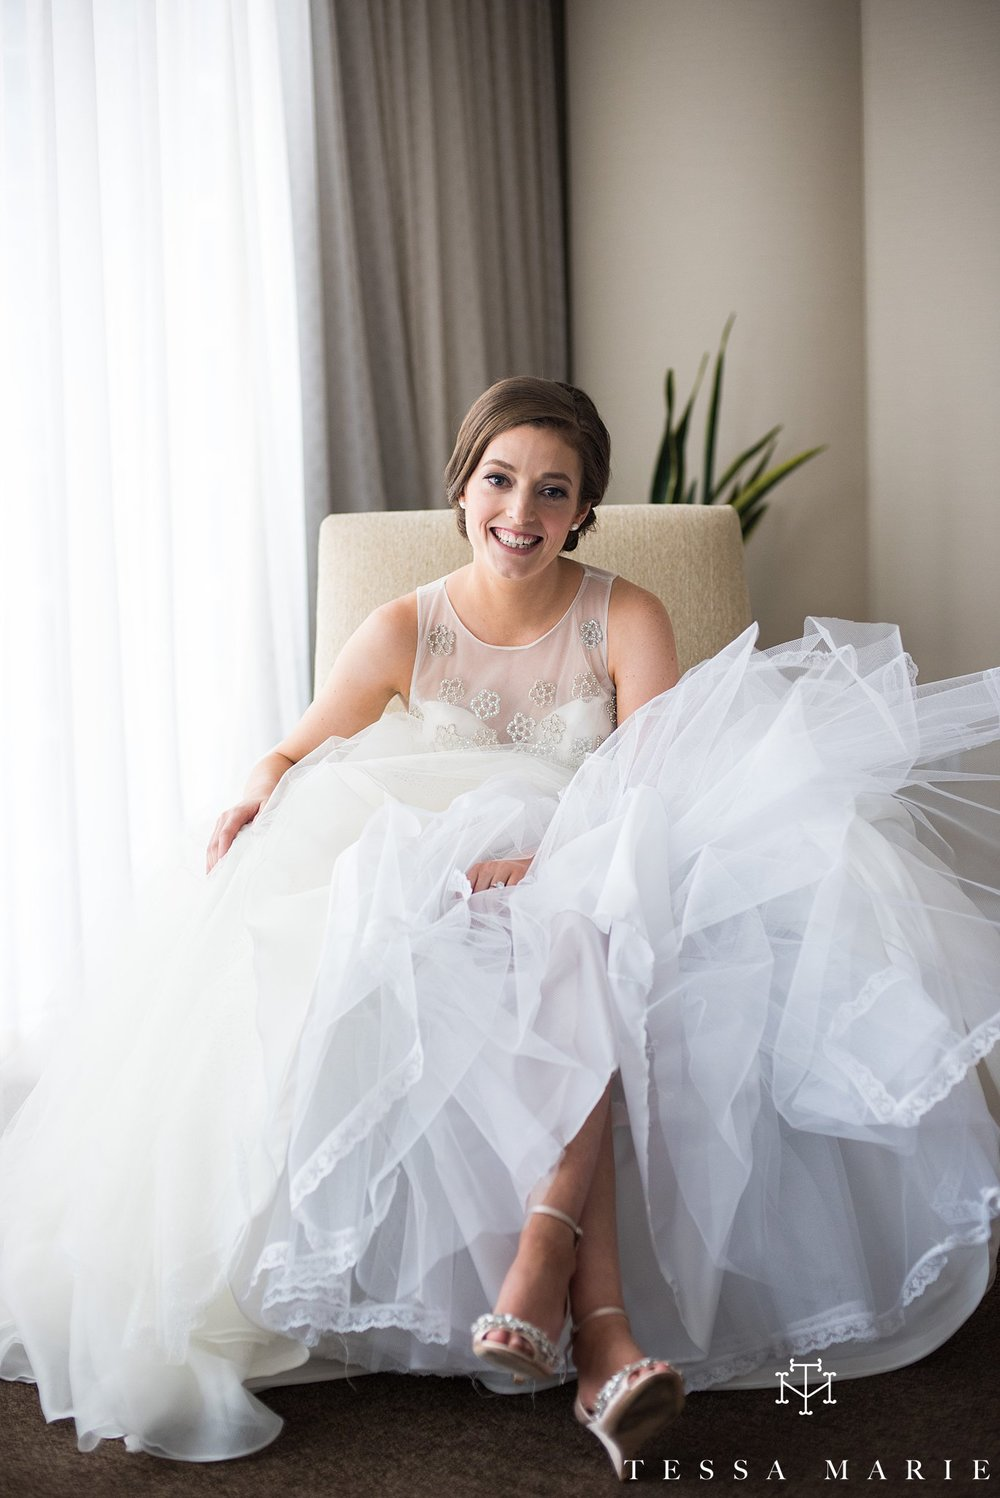 atlanta_wedding_photographer_tessa_marie_weddings_lowes_hotel_peachtree_midtown_fall_wedding_0099.jpg